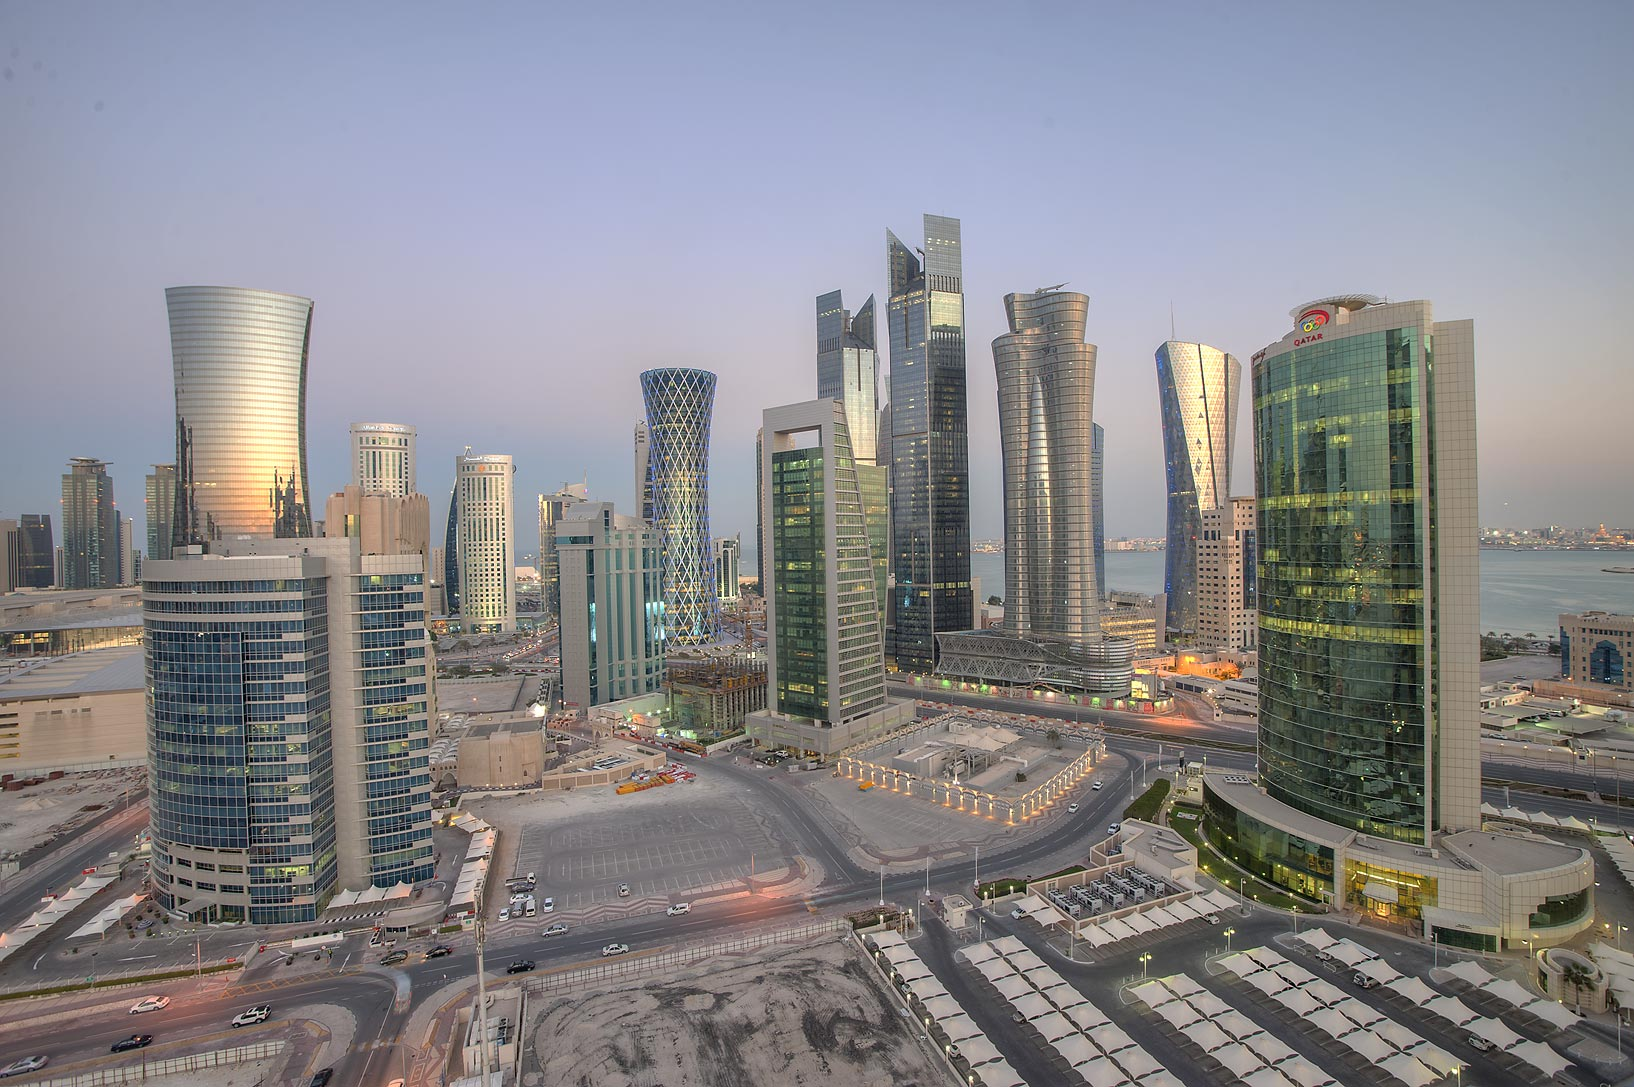 View of West Bay from balcony of Room 1703 of Dareen Tower. Doha, Qatar